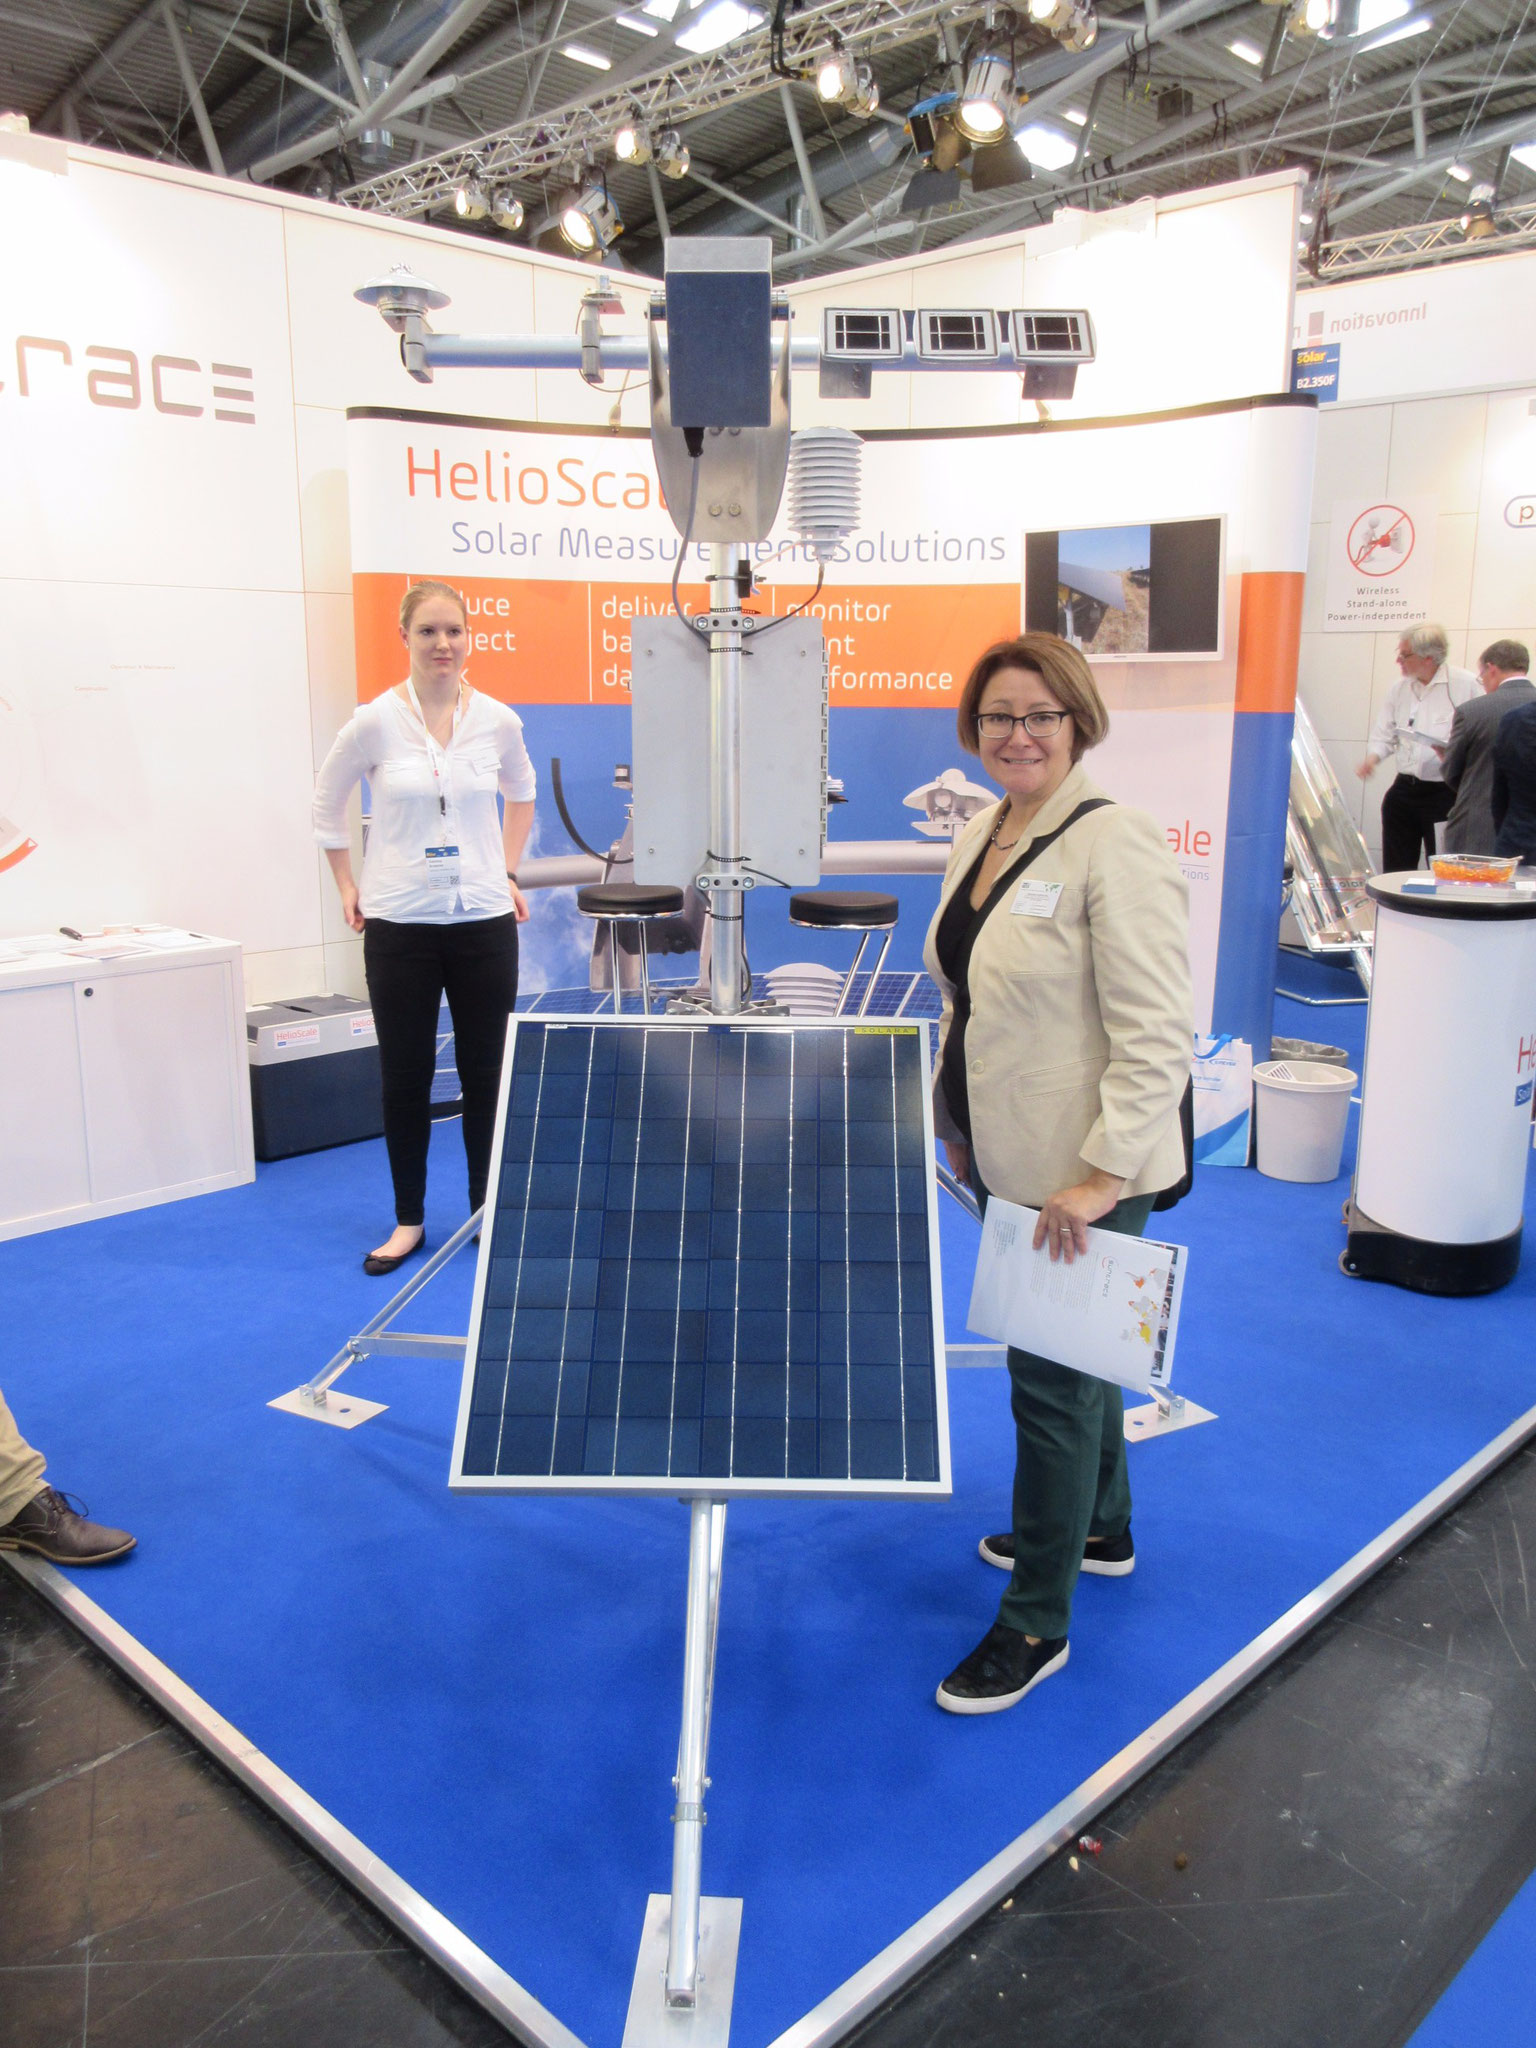 Visiting INTERSOLAR Munich 2016!